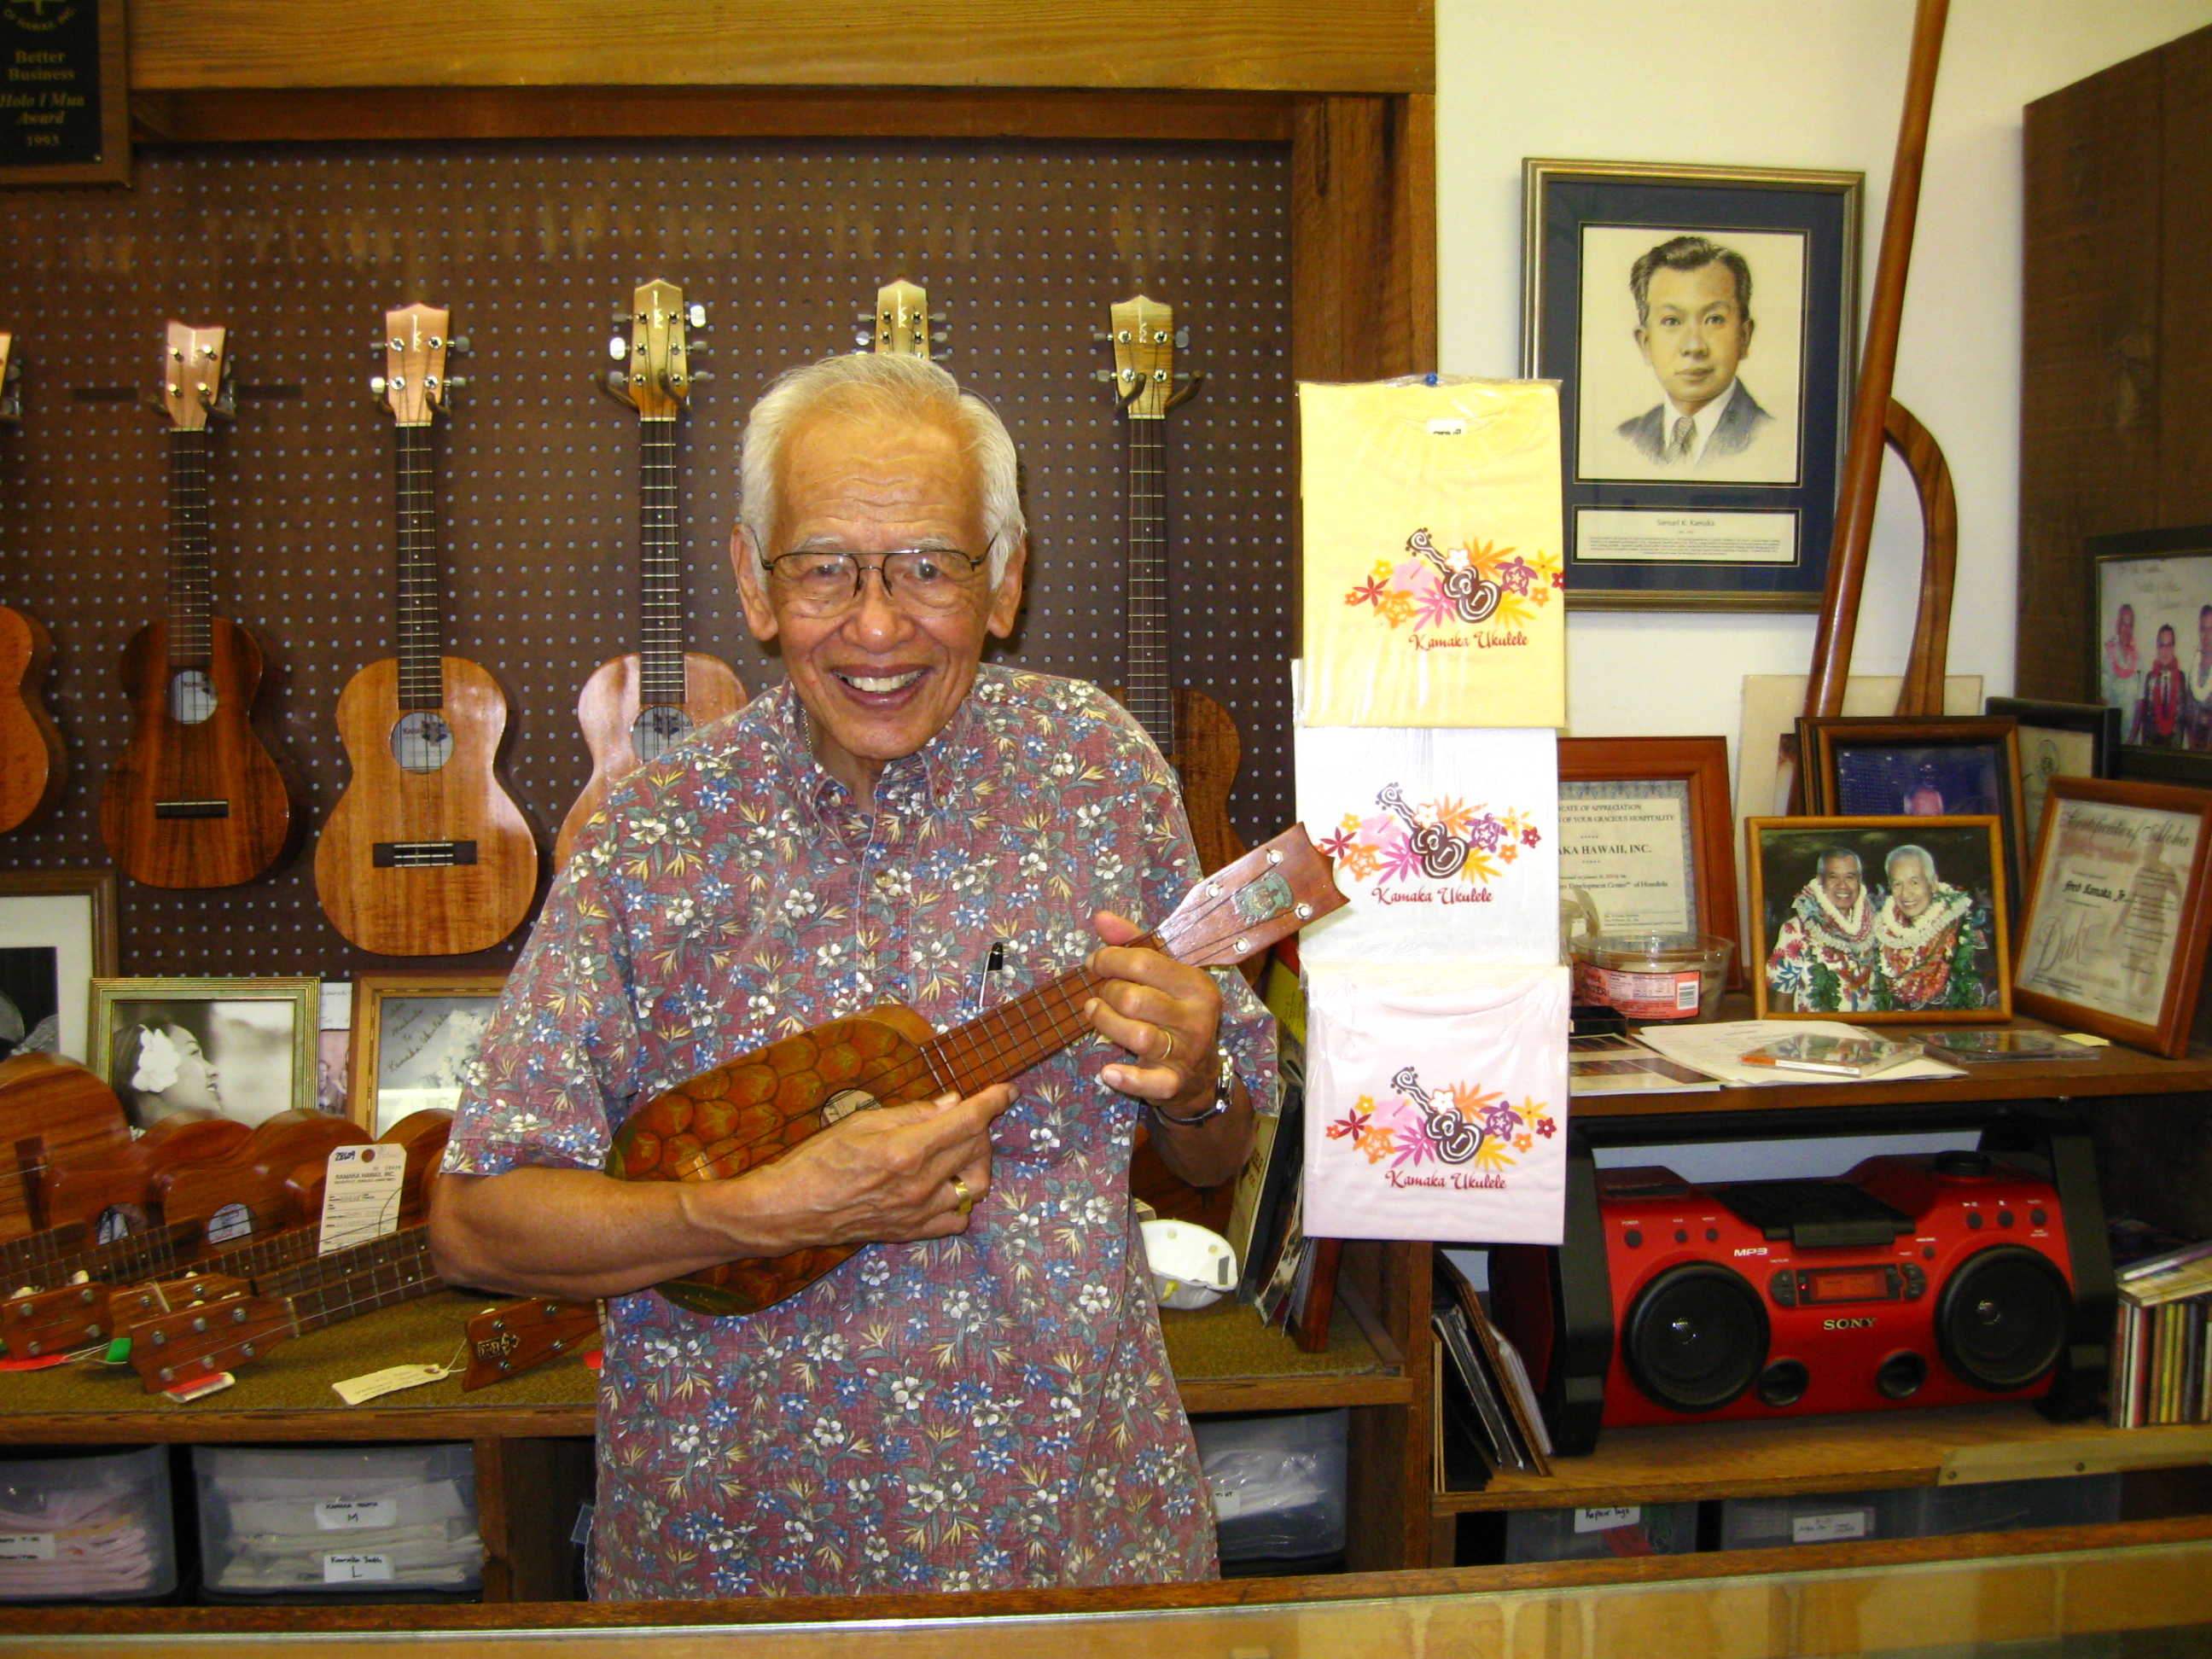 CONSTRUCTION ZONE: KAMAKA UKULELE